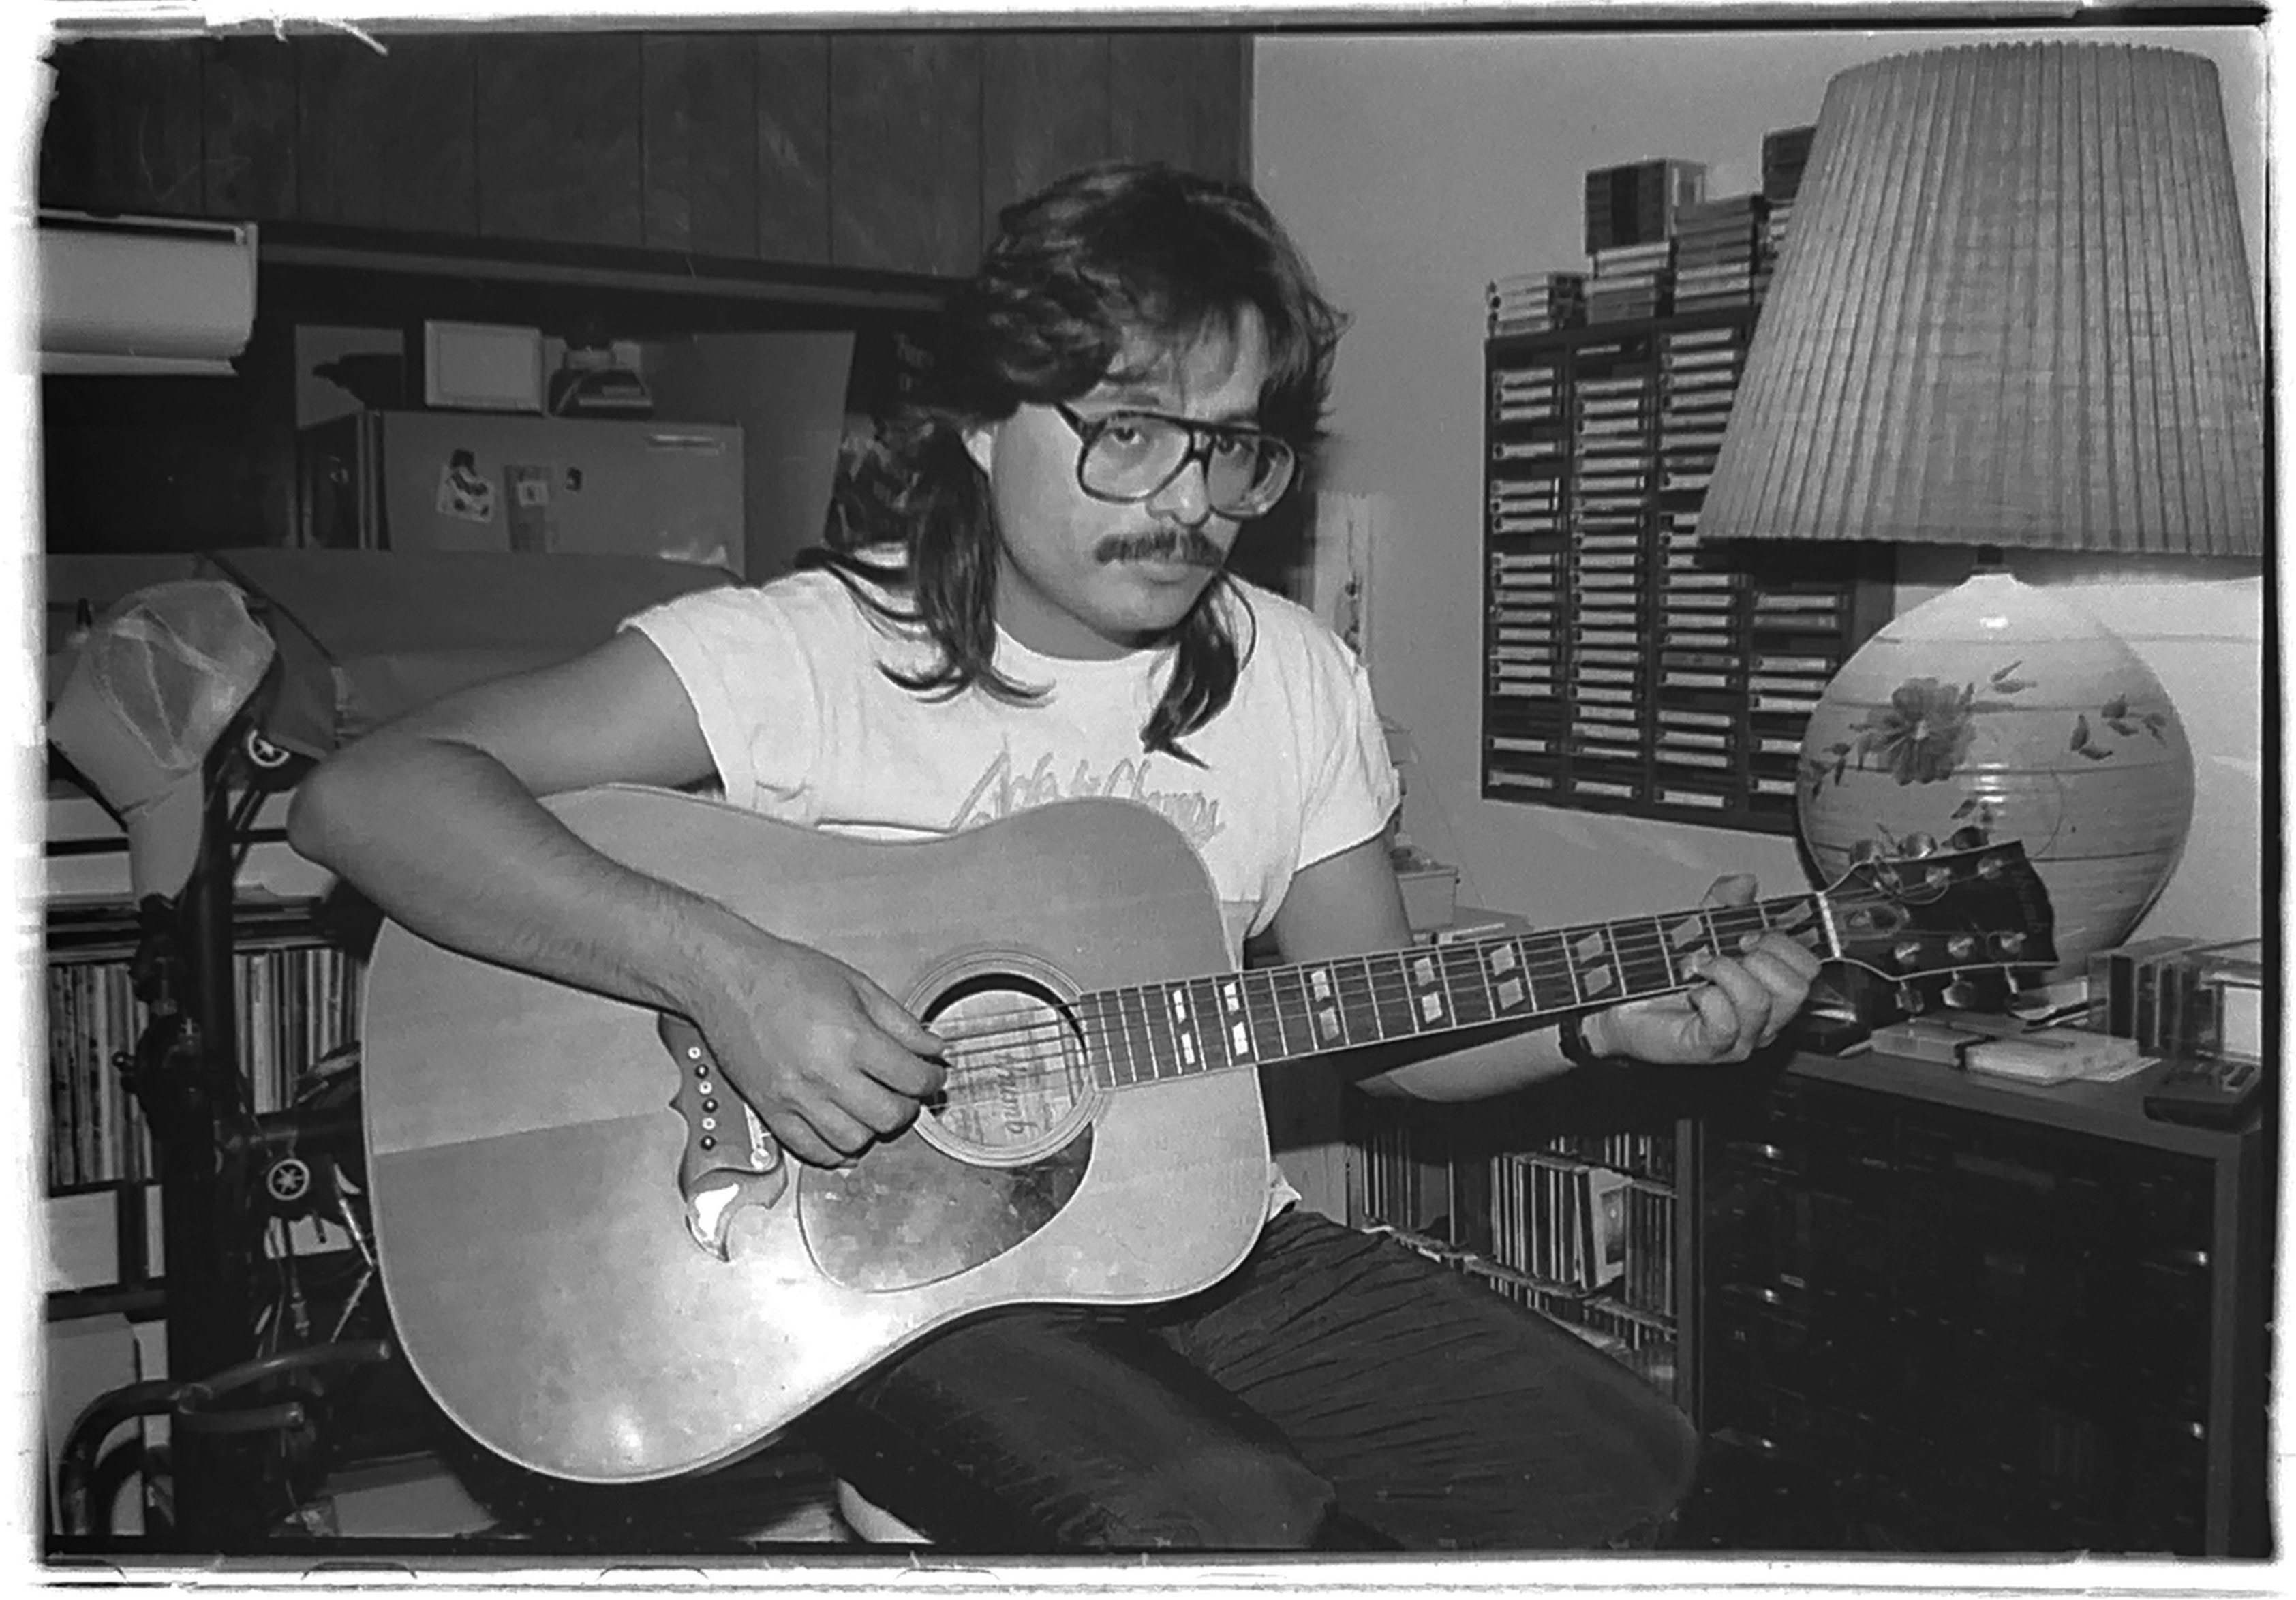 1990-06-comm217-bw-photography-self-portrait-guitar-dude-01